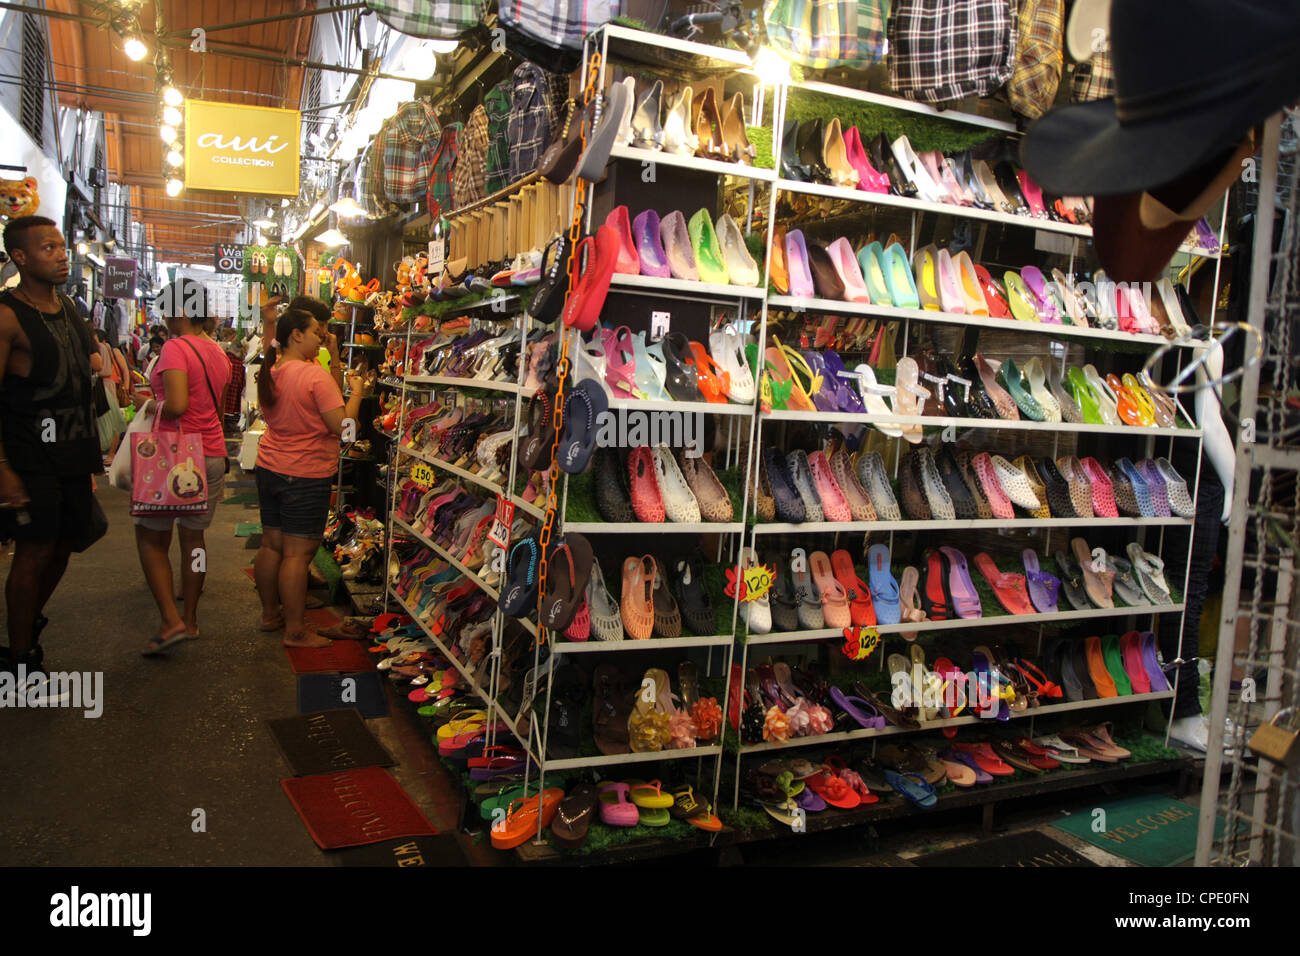 shoe shopping shop market stockfotos shoe shopping shop market bilder alamy. Black Bedroom Furniture Sets. Home Design Ideas